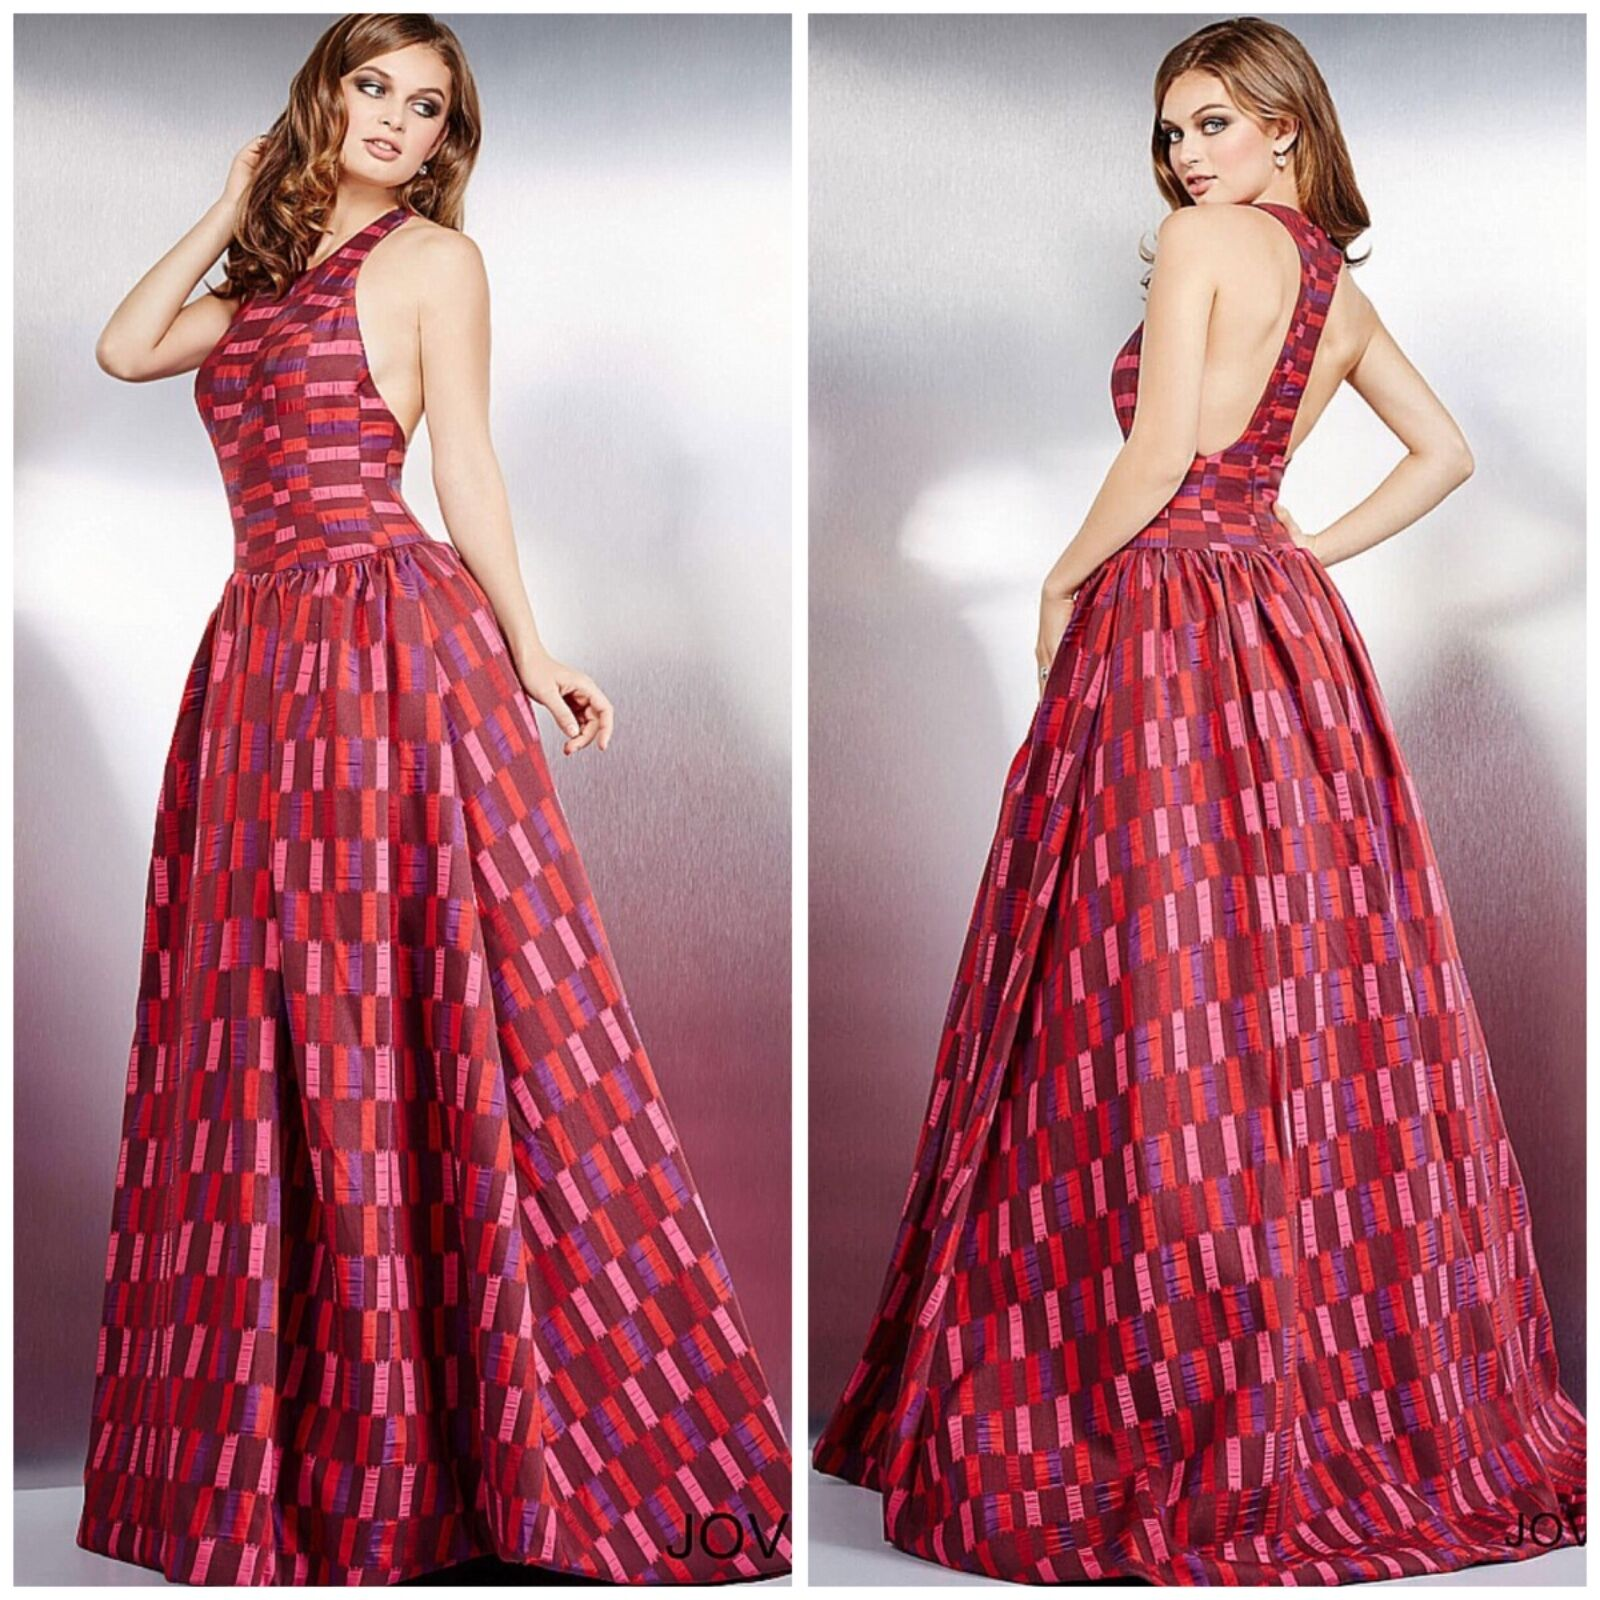 JOVANI 28675 RATRO PRINTED  BALL GOWN RUNAY PAGENT  SZ 0,2,4,6, AUTENTIC